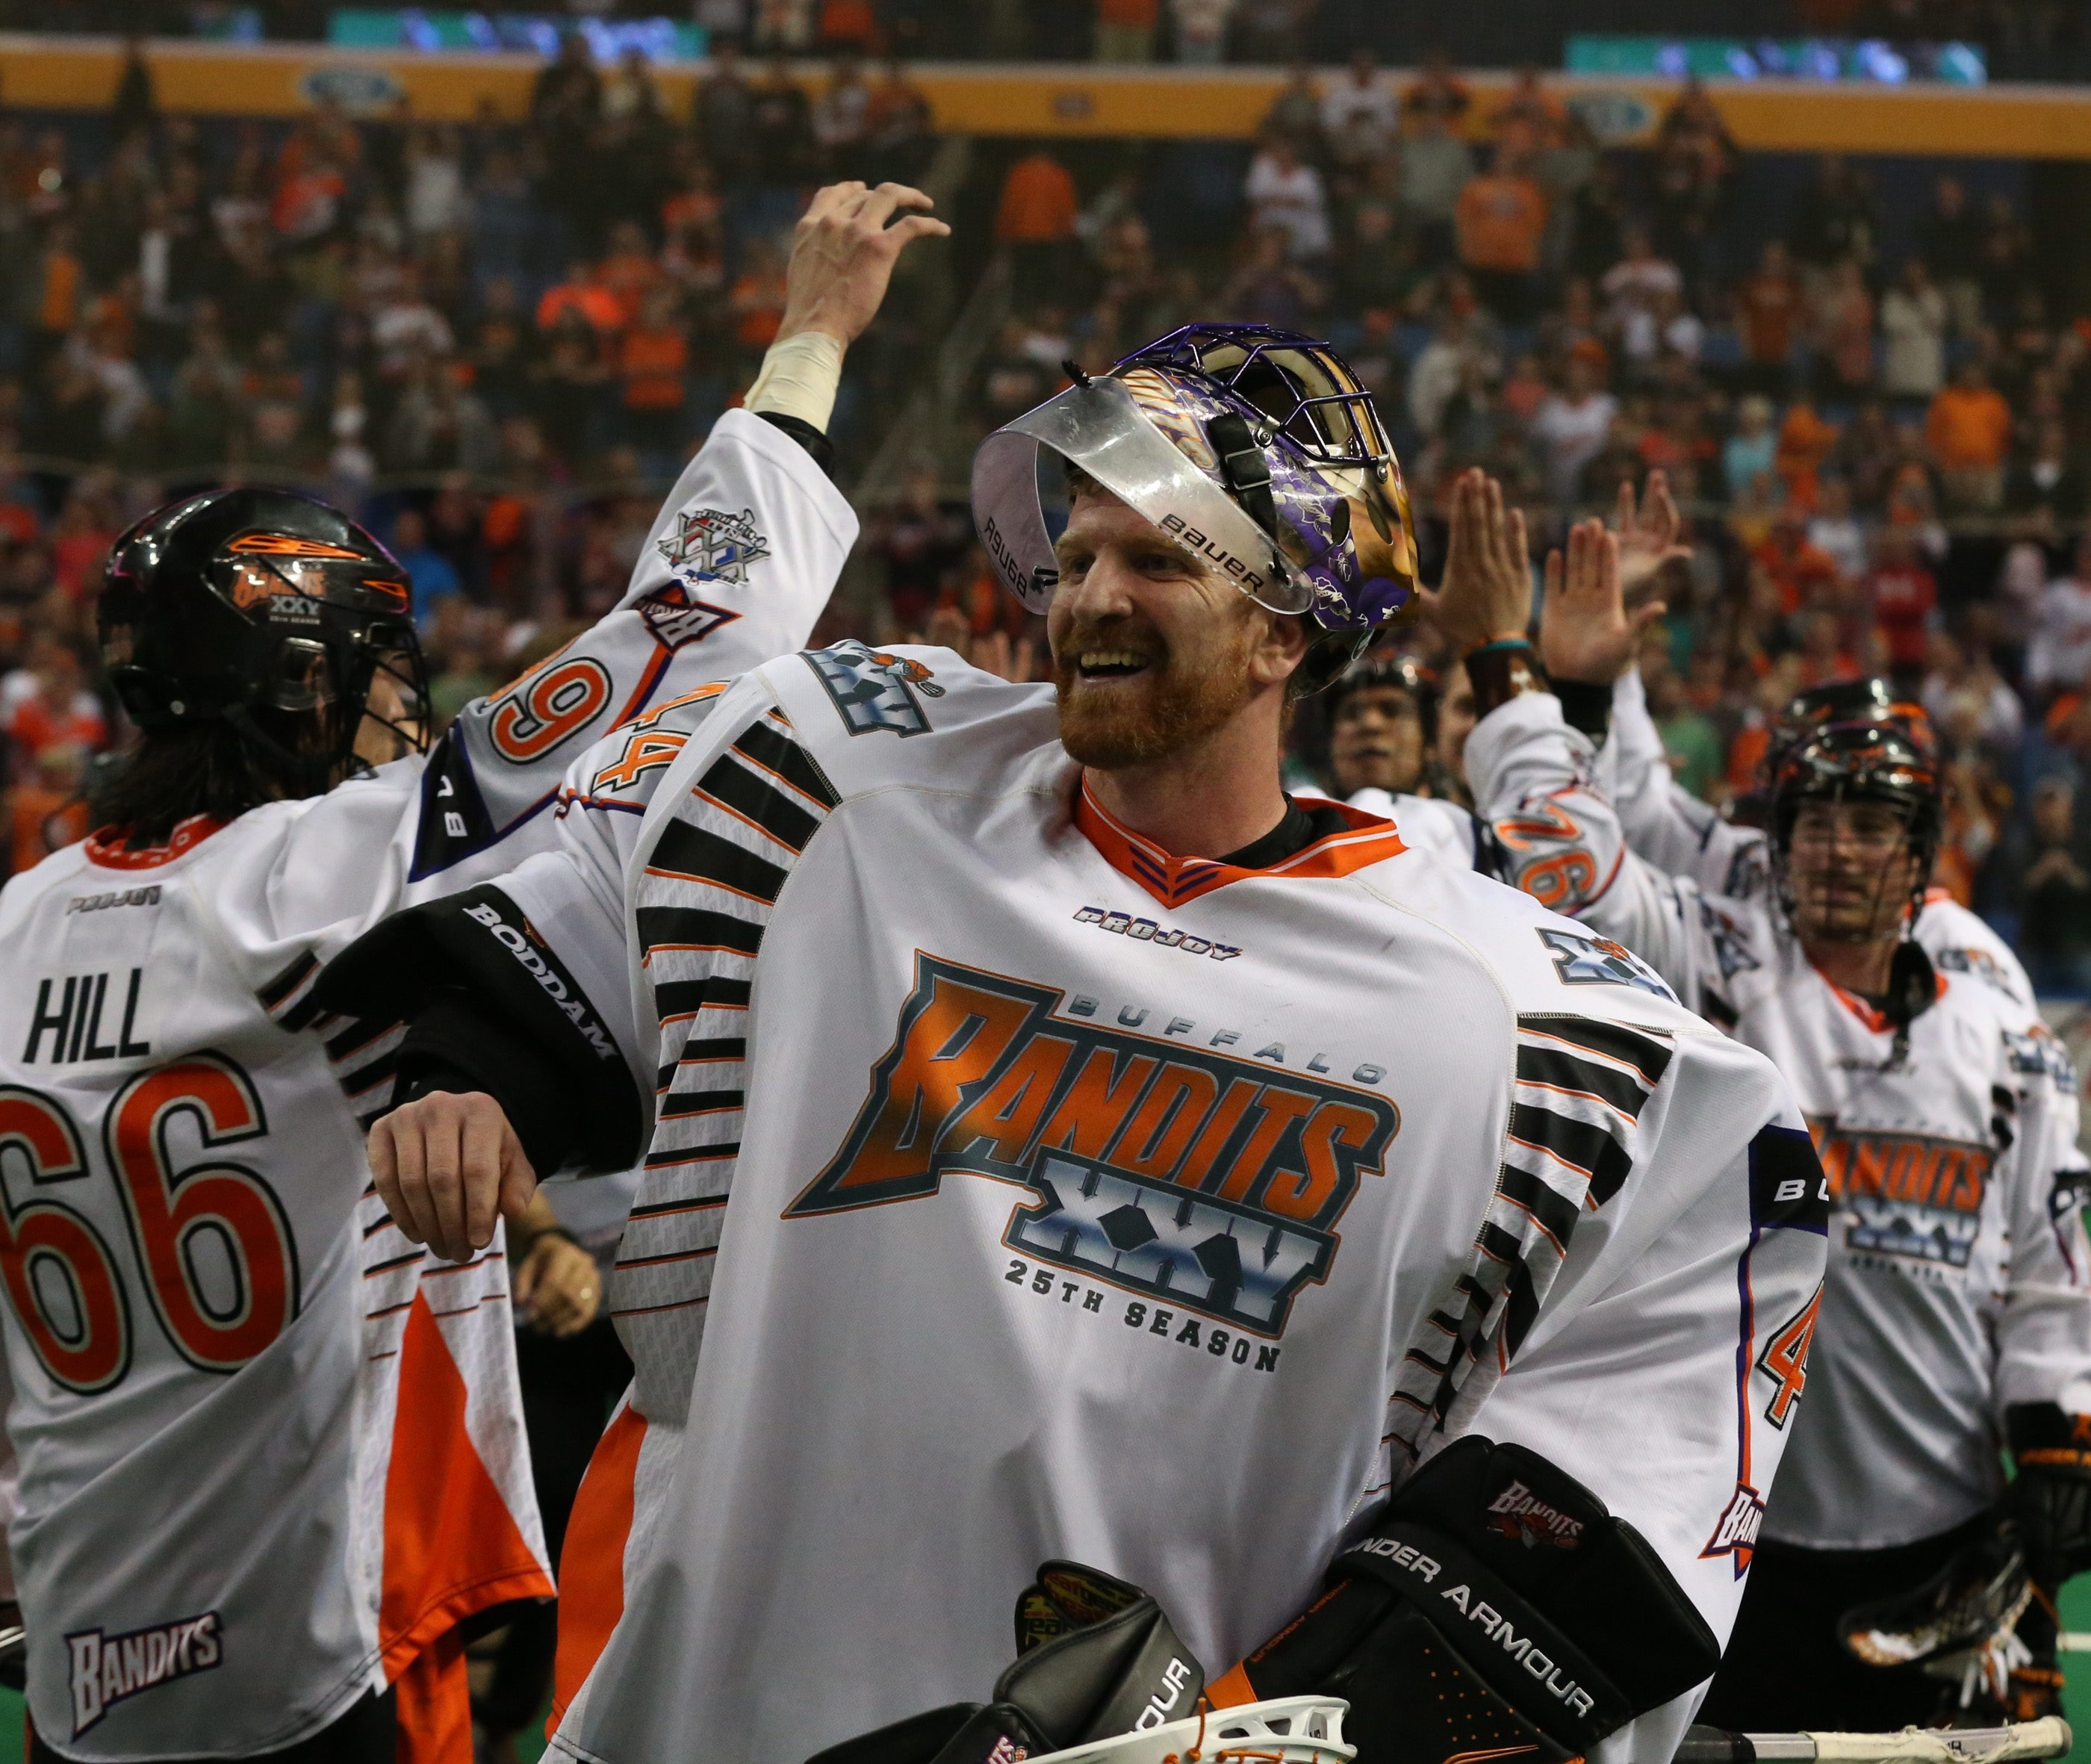 Anthony Cosmo was delighted to reach the NLL finals after his Bandits beat New England on Saturday night.